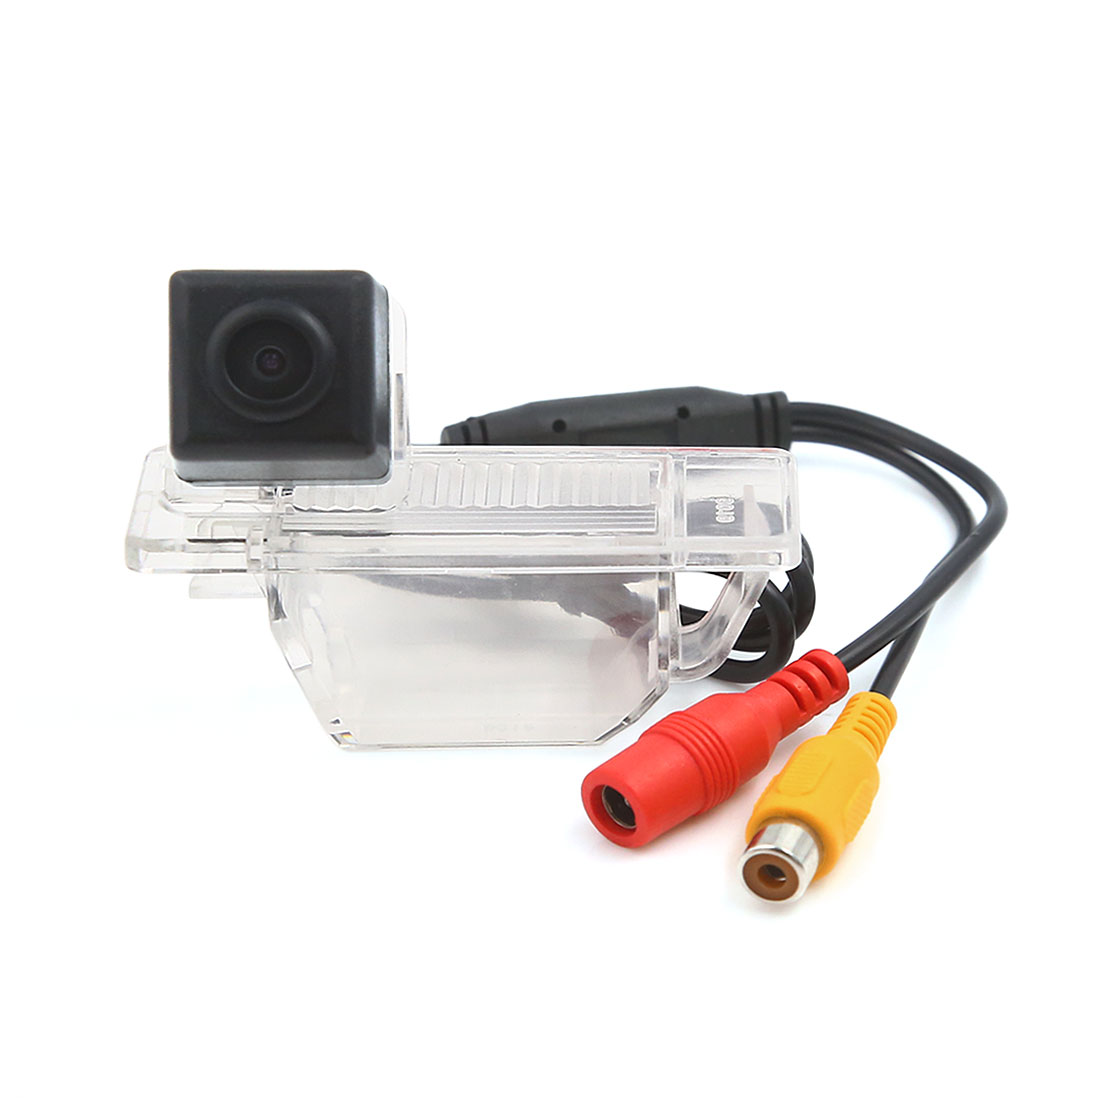 DC12V 480 TVL Rear View Reverse Backup Parking Camera for 2011 Nissan Sunny